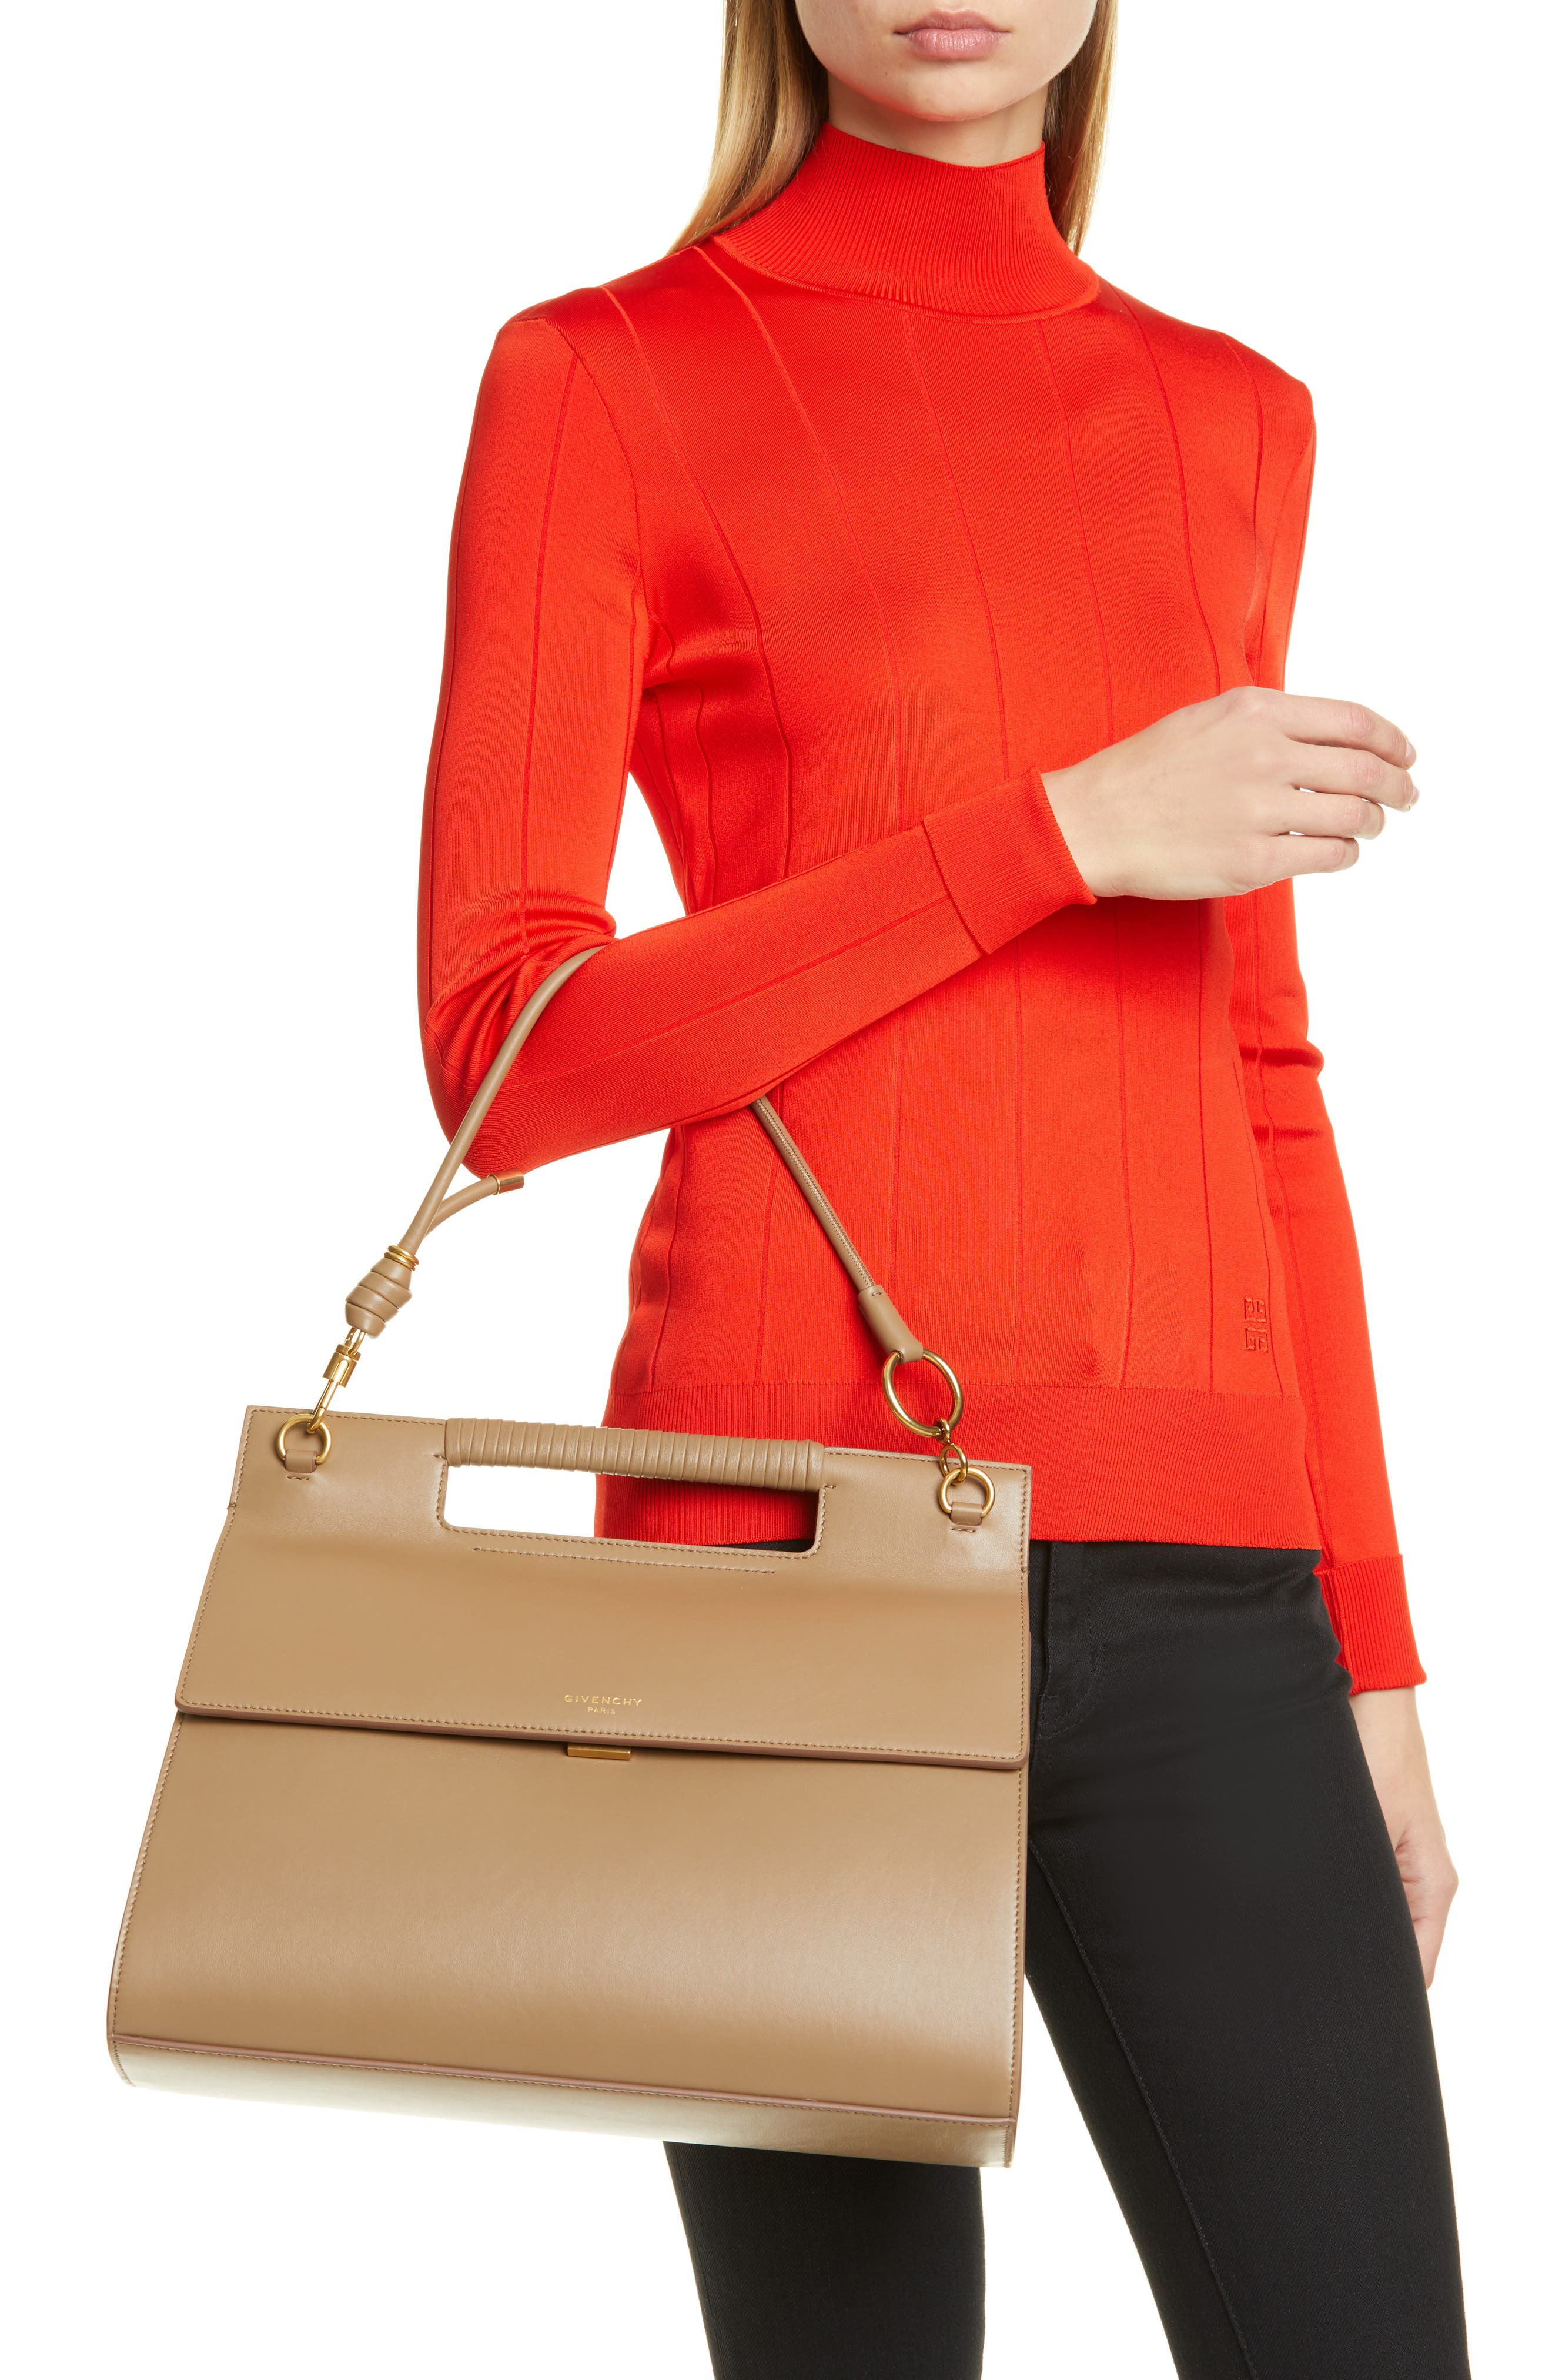 GIVENCHY, Whip Large Leather Satchel, Alternate thumbnail 4, color, TAUPE